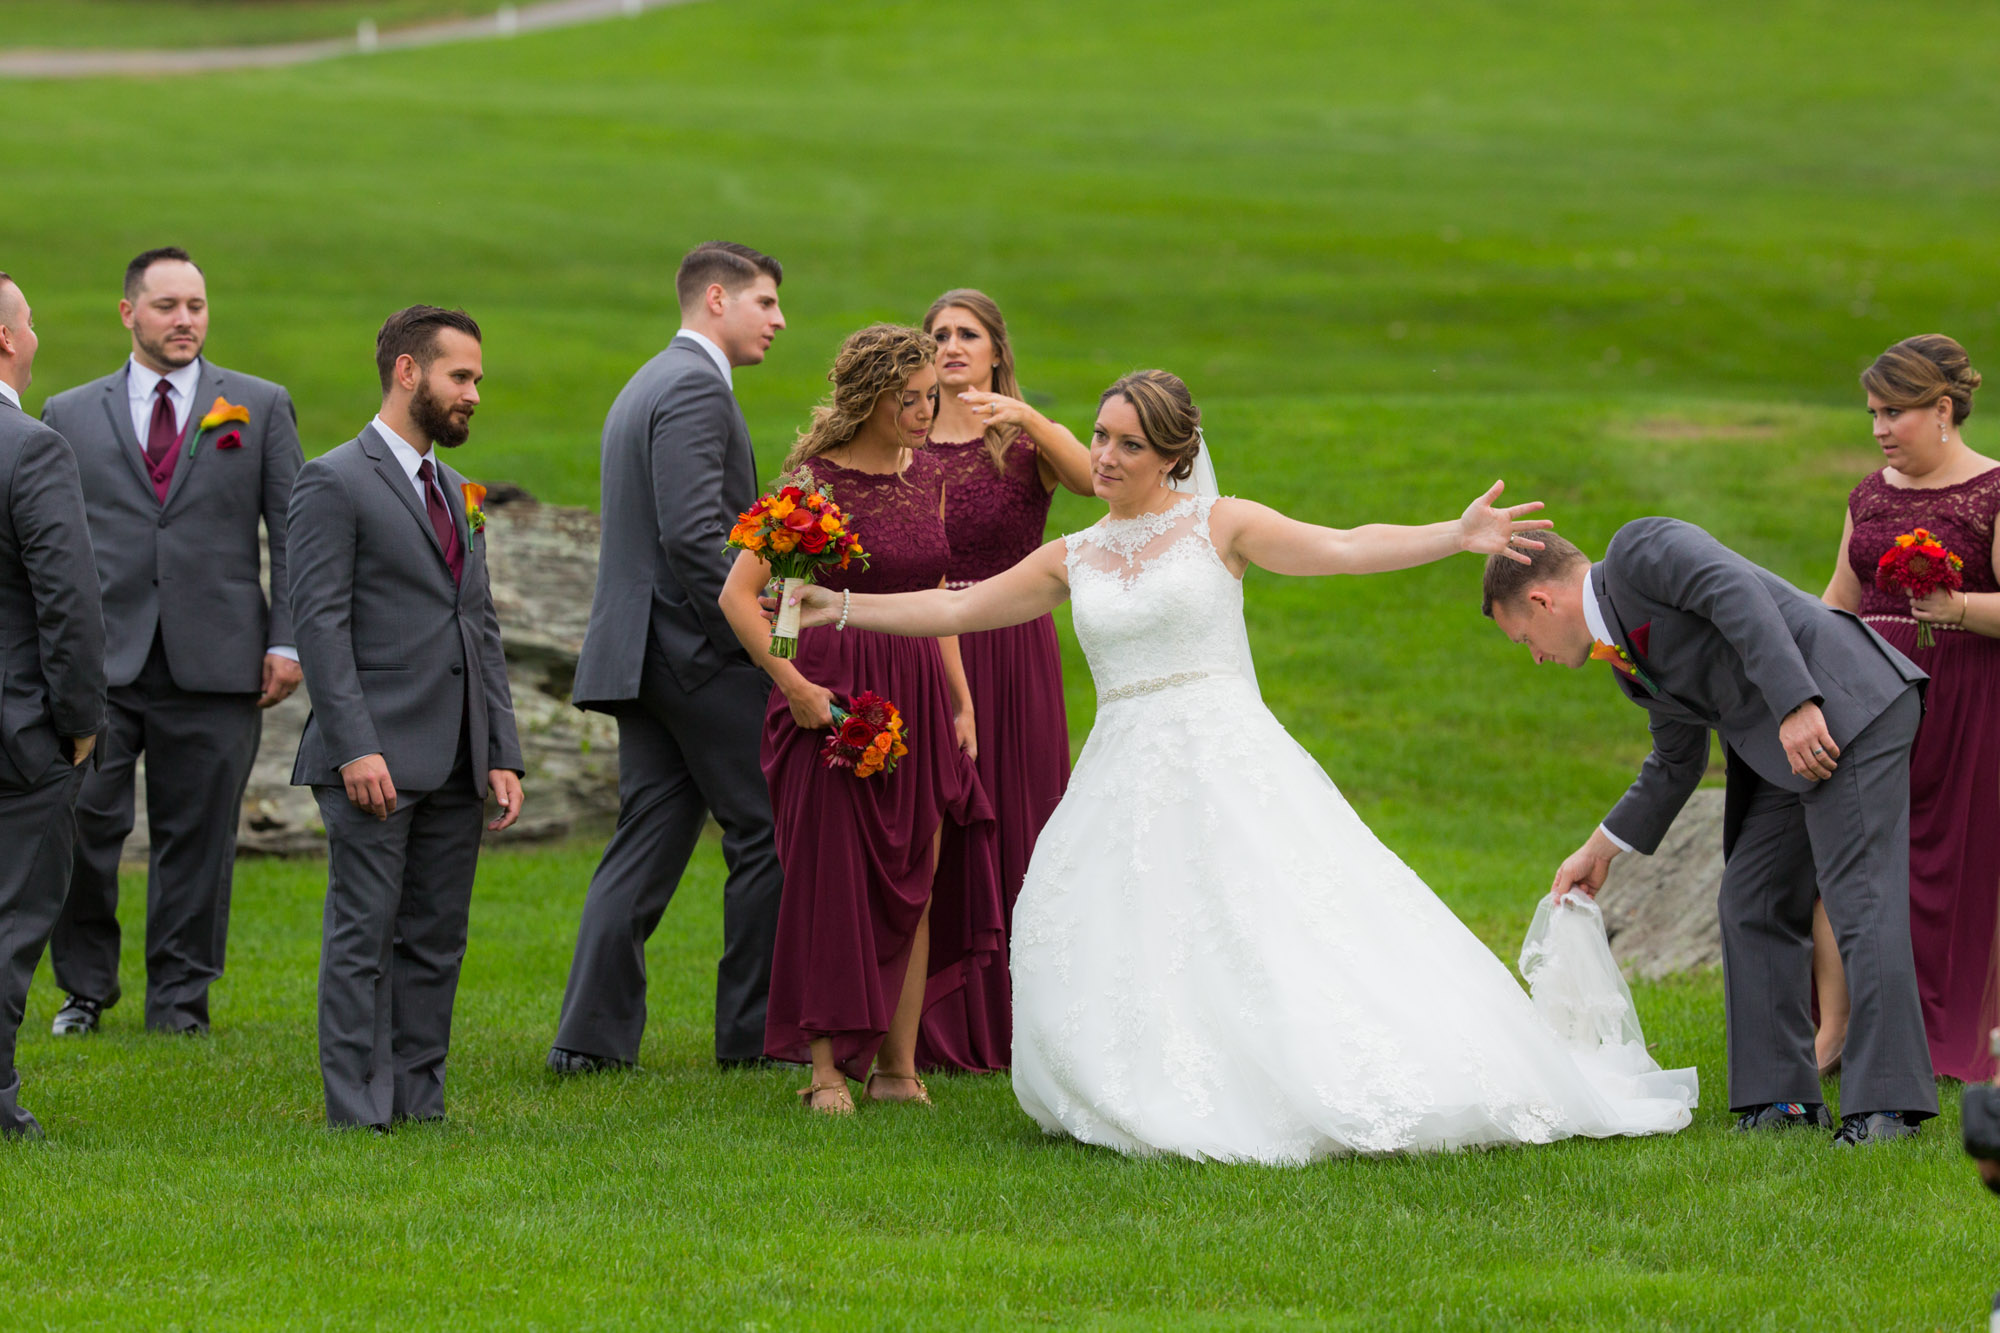 scranton_wedding_photographer_lettieri_pa (14 of 34).jpg